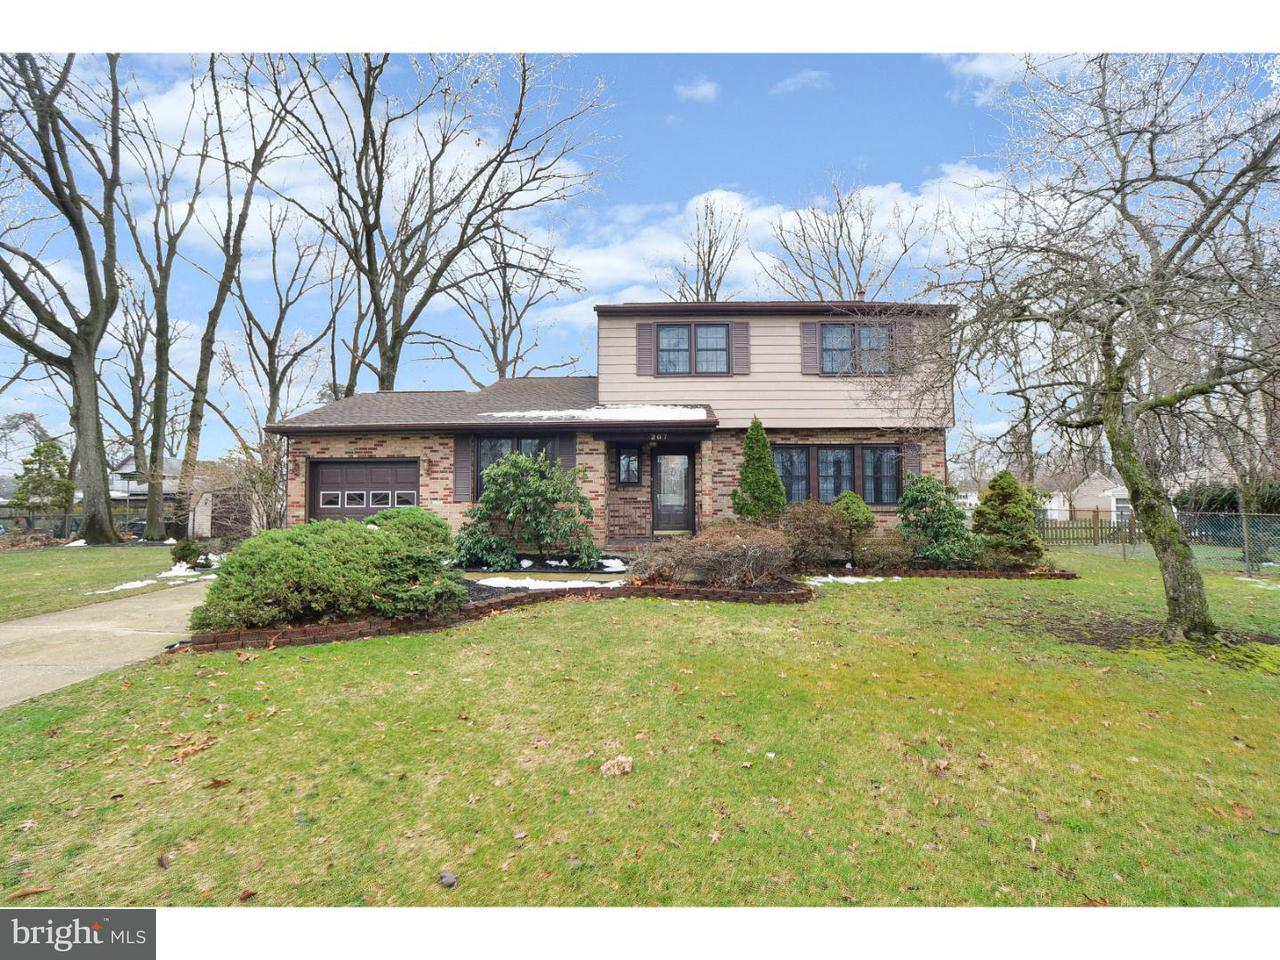 Single Family Home for Sale at 207 10TH Street National Park, New Jersey 08063 United States